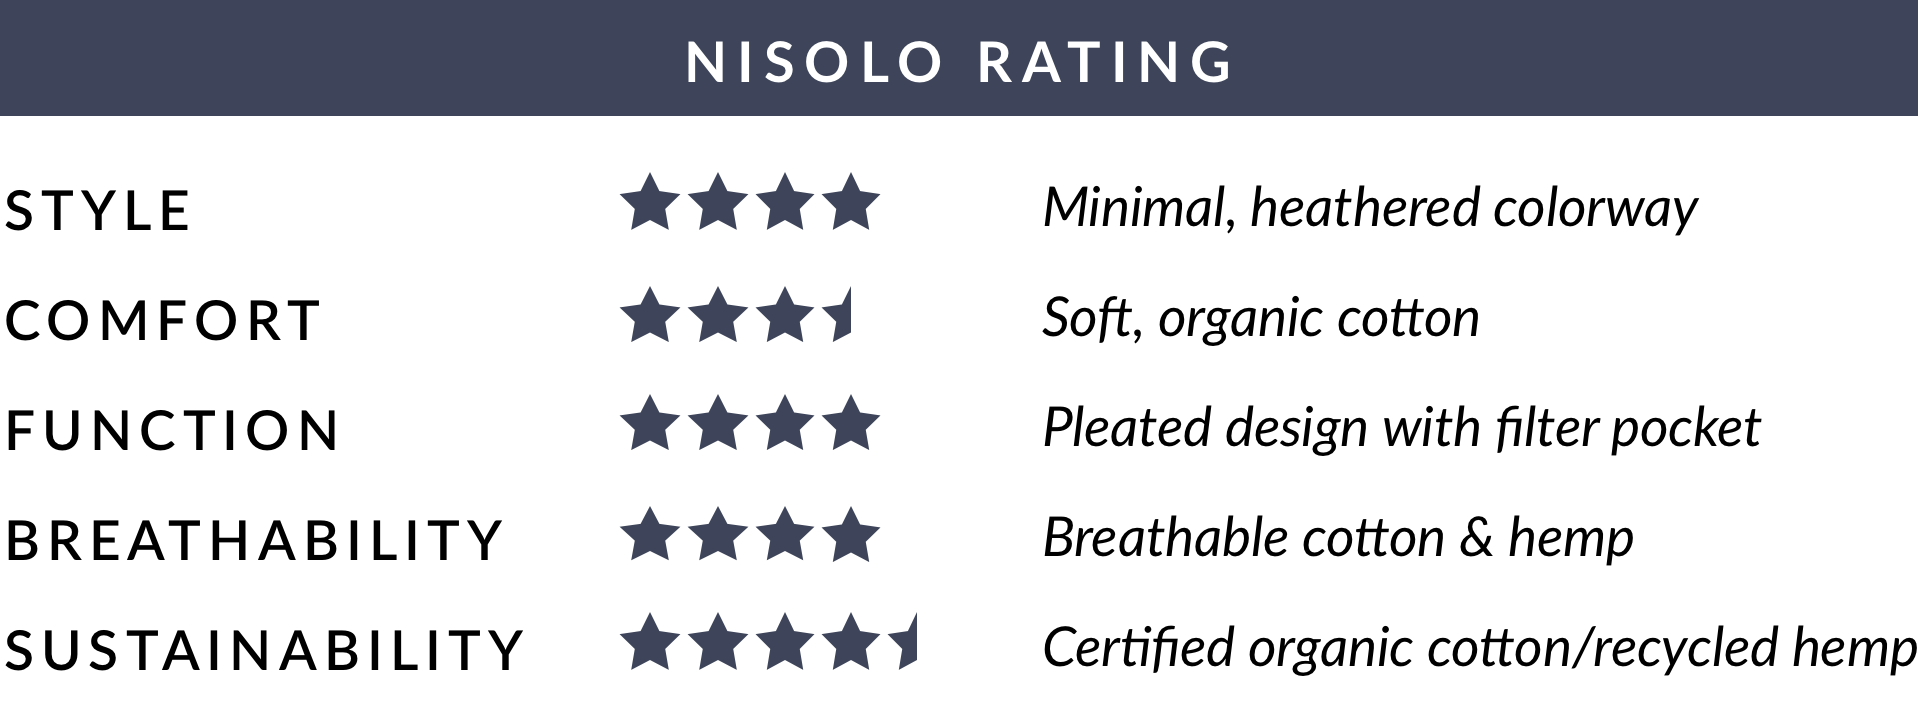 Nisolo Rating of Made Trade Kids Upcycled Hemp & Cotton Mask - Assorted Colors (3) Pack - Average of 4 out of 5 stars